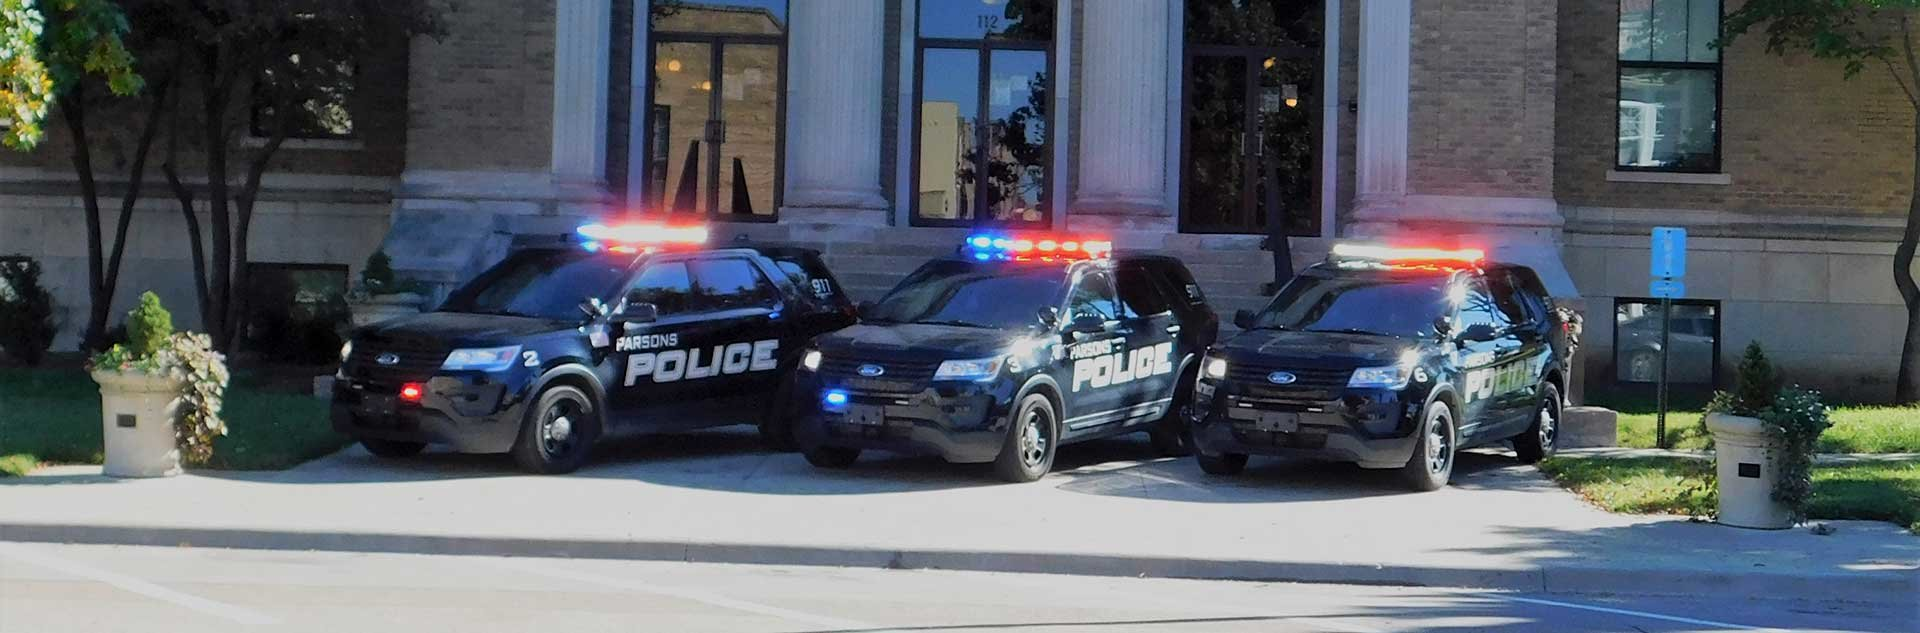 Parsons Police Department Vehicles